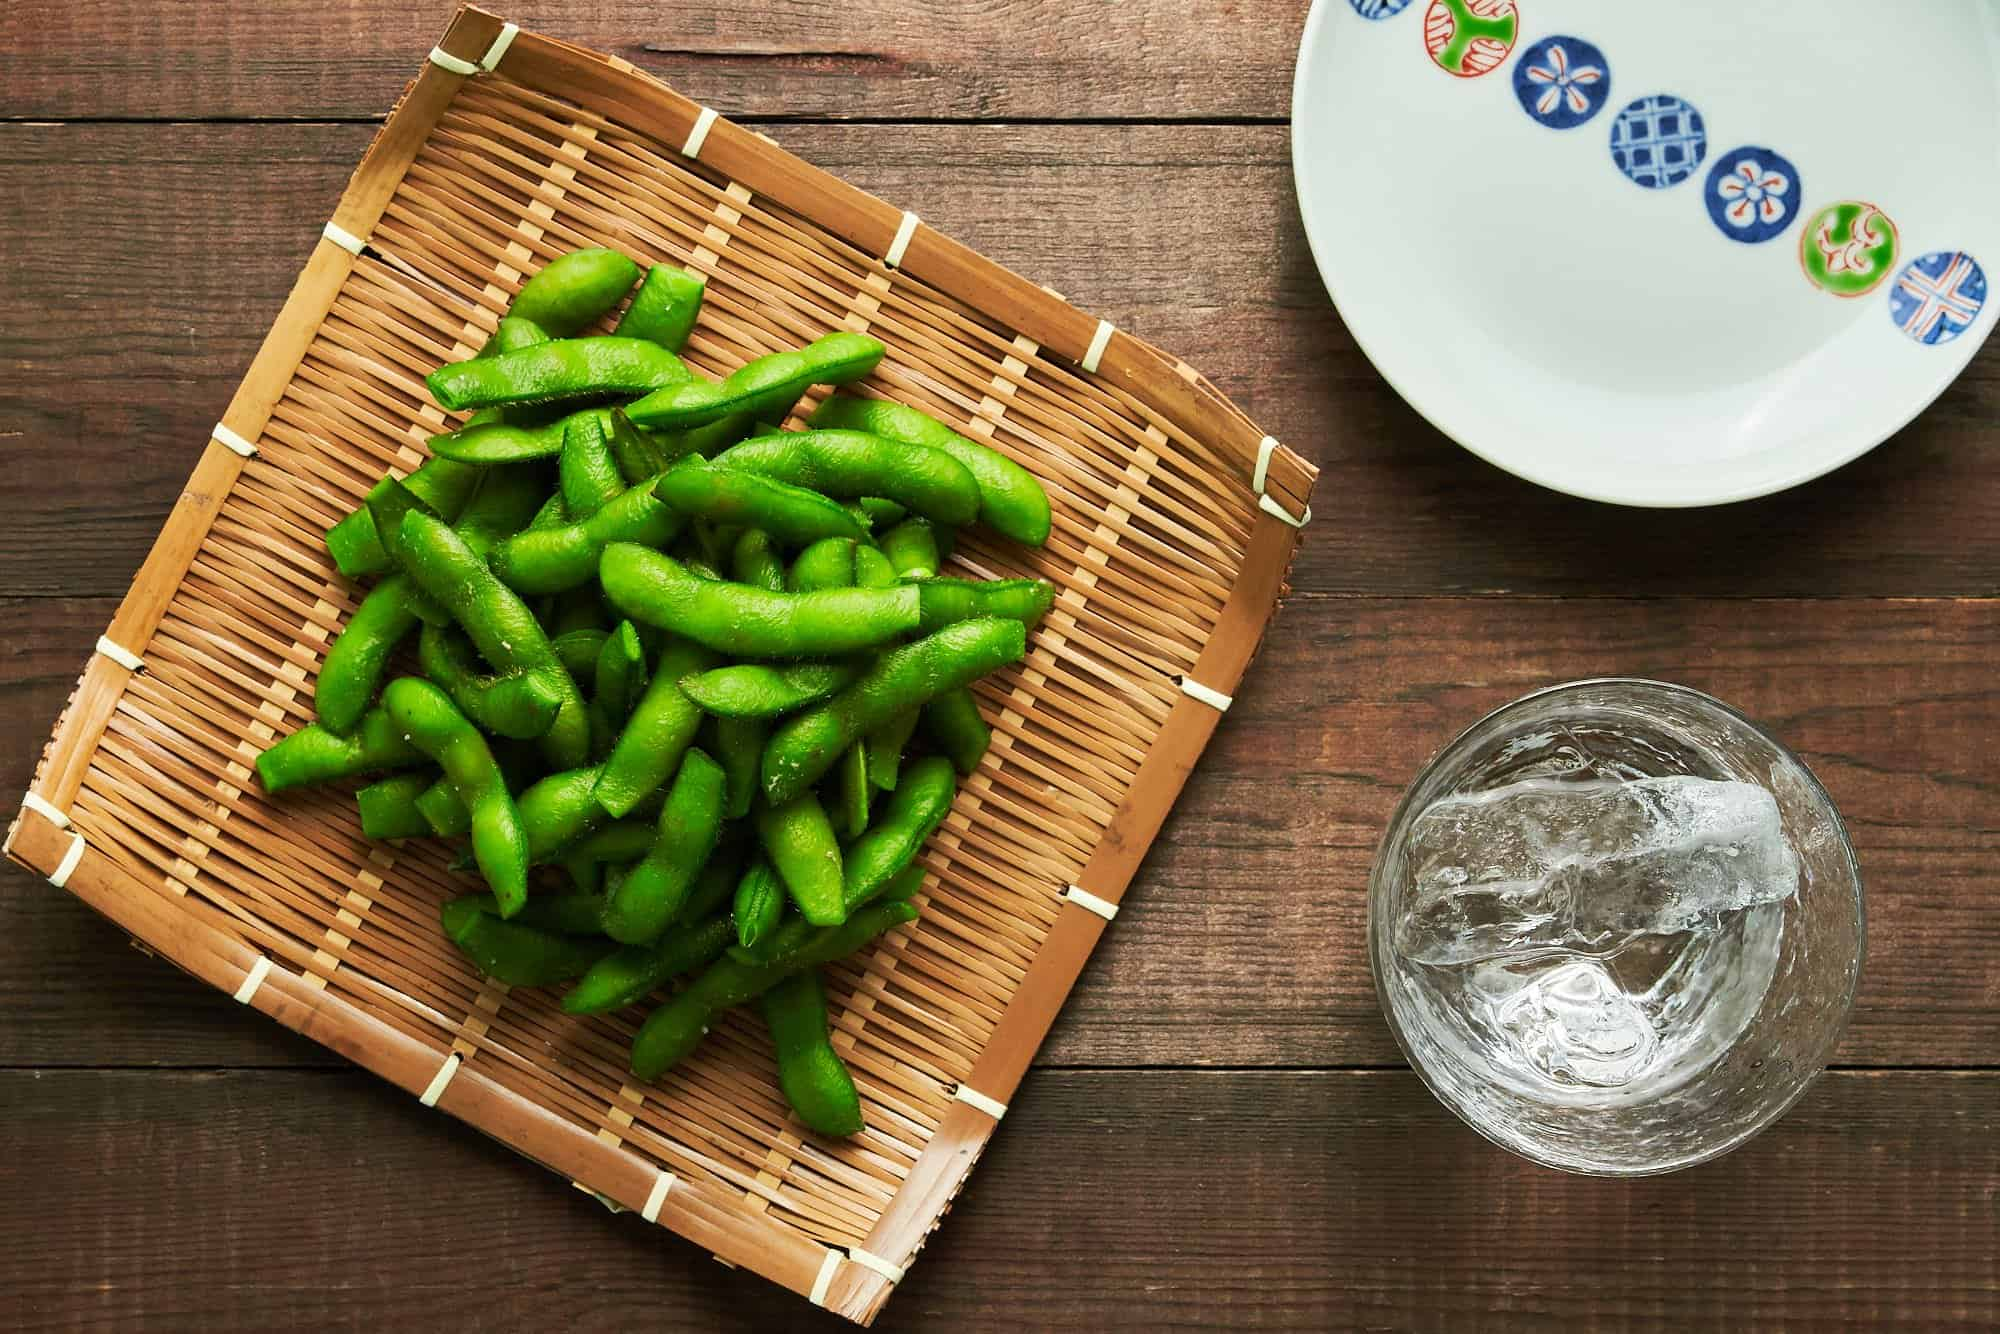 Edamame are an easy Japanese appetizer that comes togehter in just minutes. Here's the classic technique for making authentic Japanese edamame.